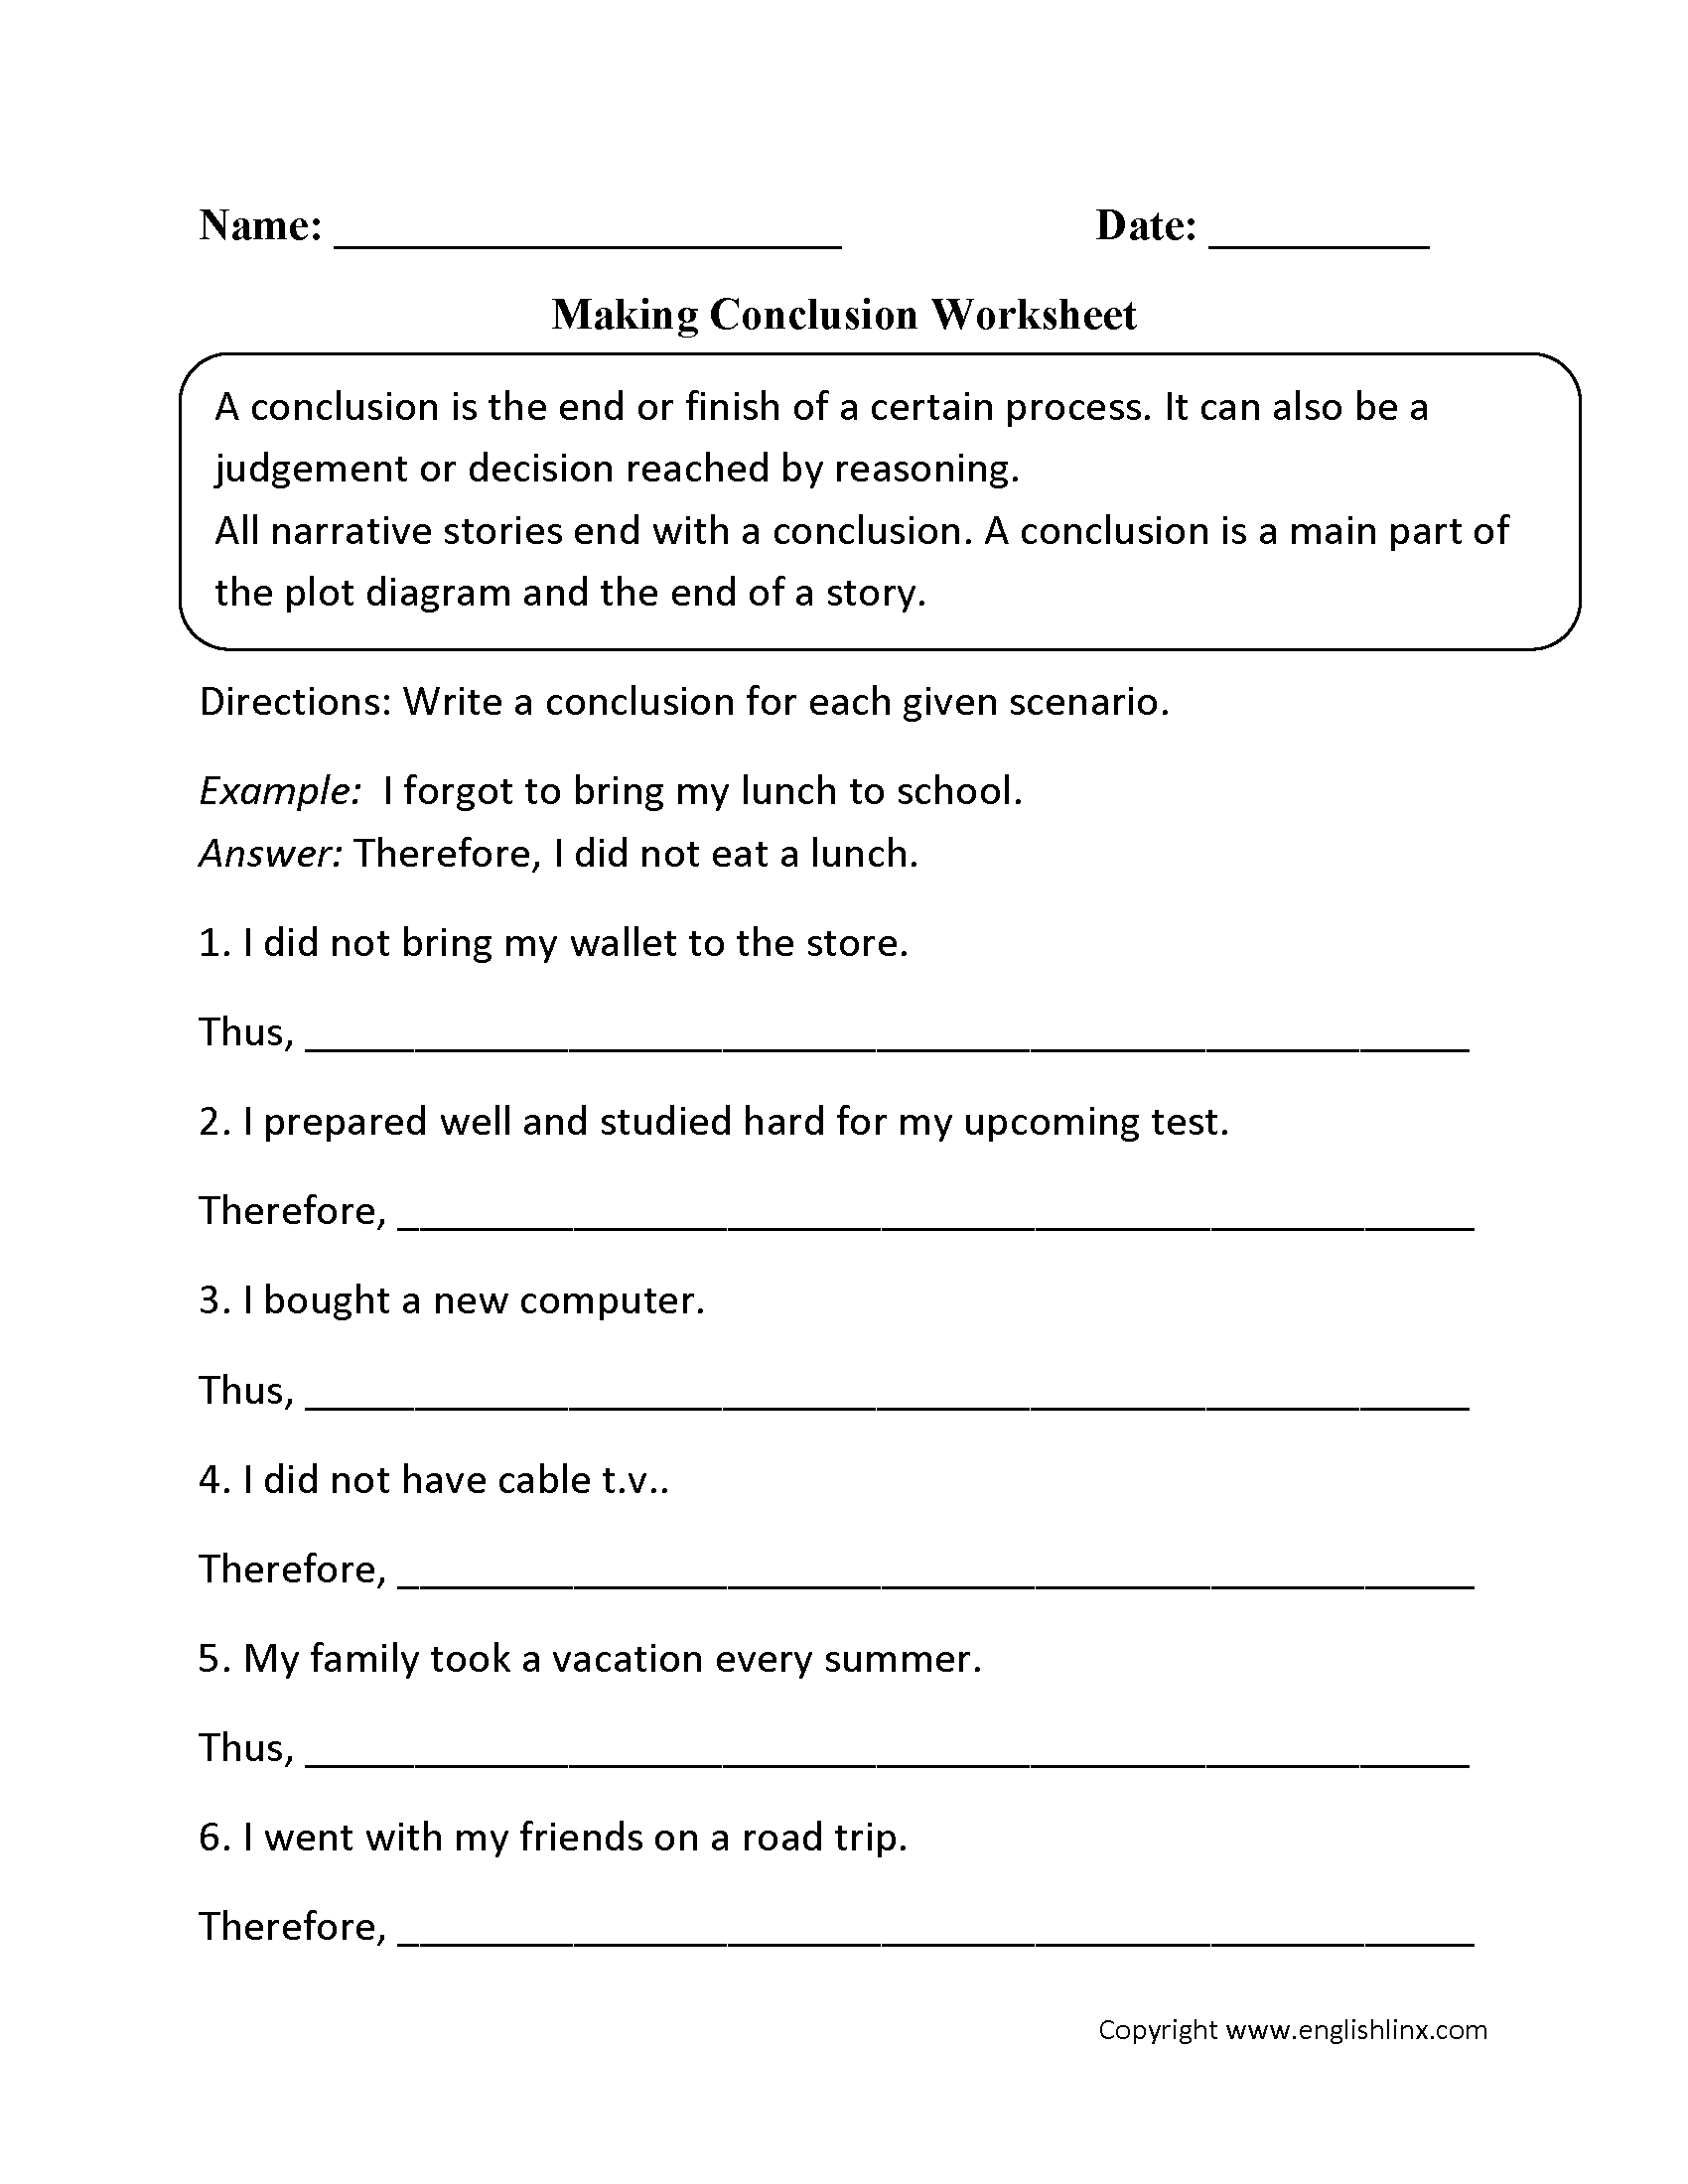 Englishlinxcom  Writing Conclusions Worksheets Writing Conclusions Worksheets